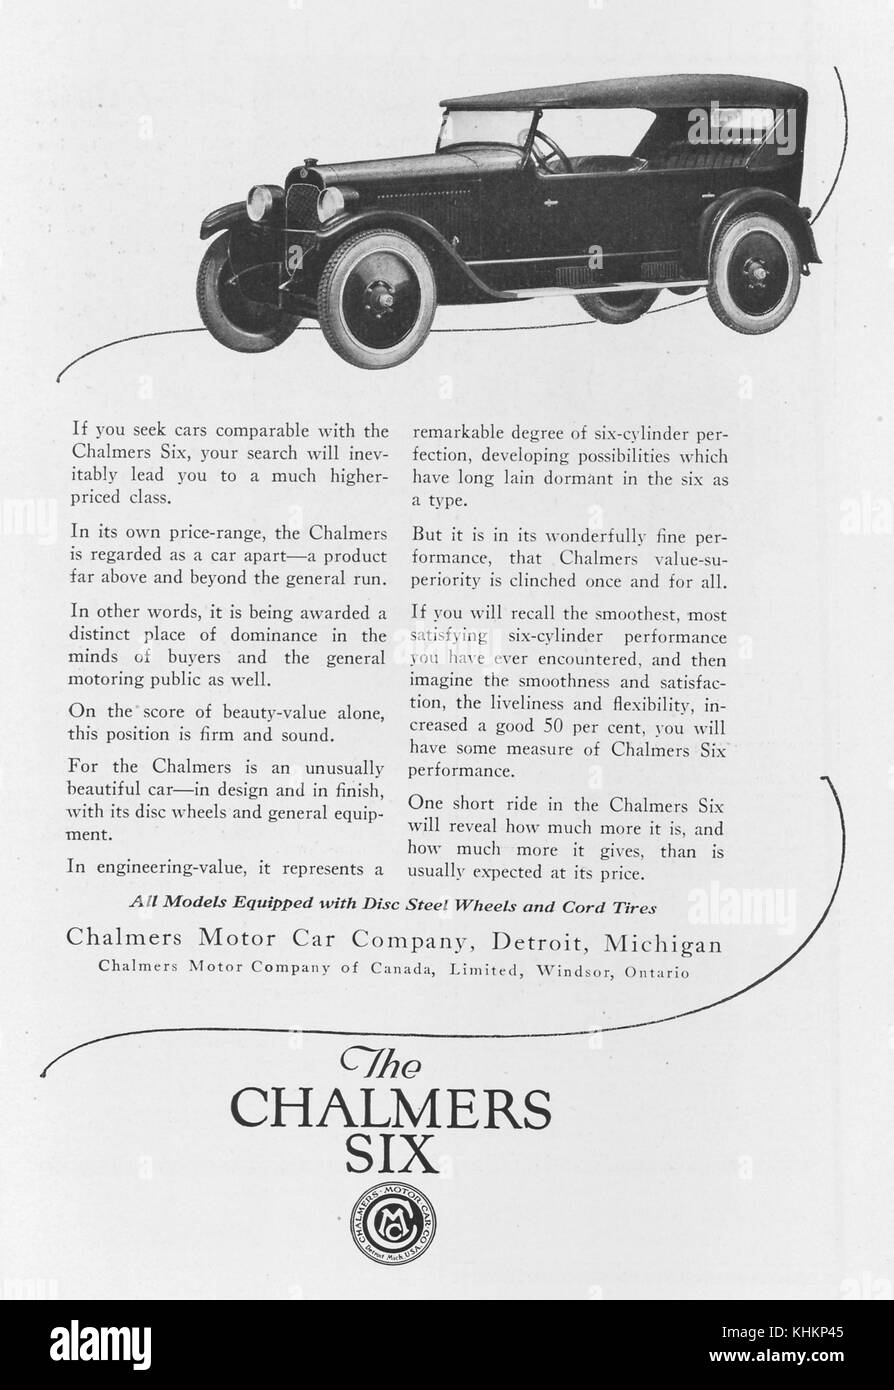 Full page advertisement for the Chalmers Six car model, by the Chalmers Motor Car Company